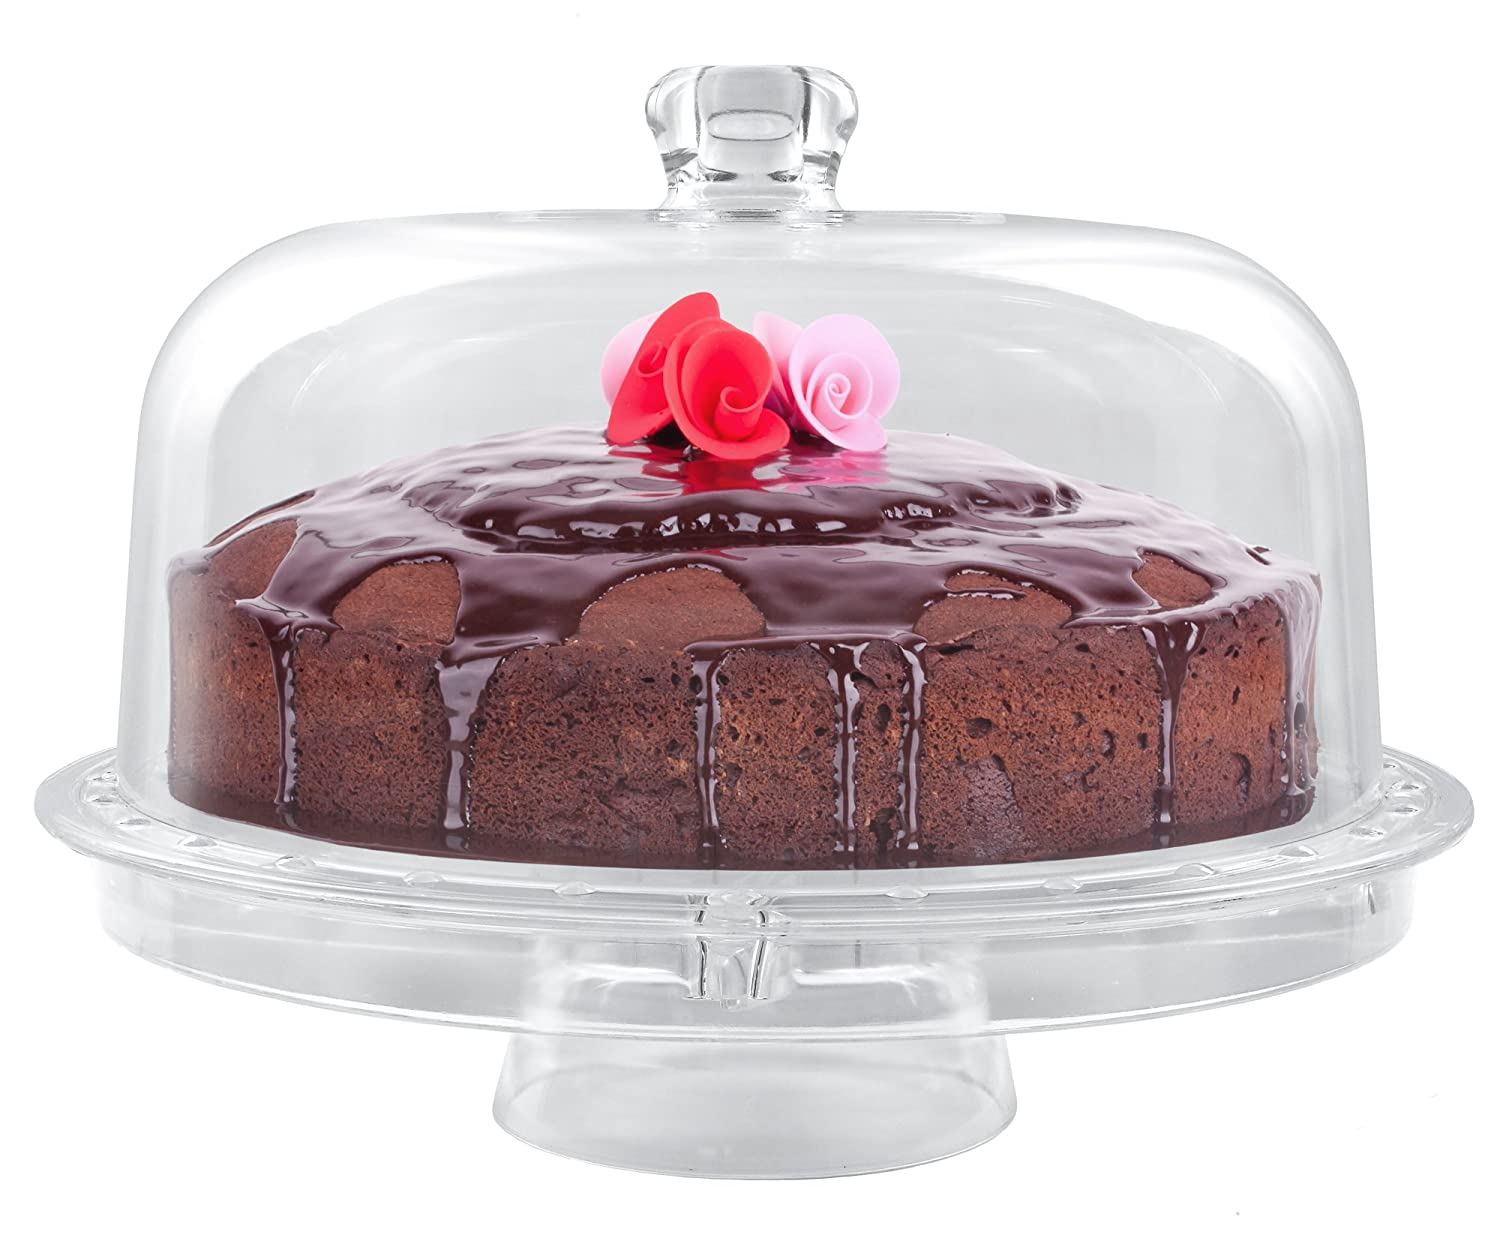 Estilo EST0314 Multifunctional Cake and Serving Stand, Clear